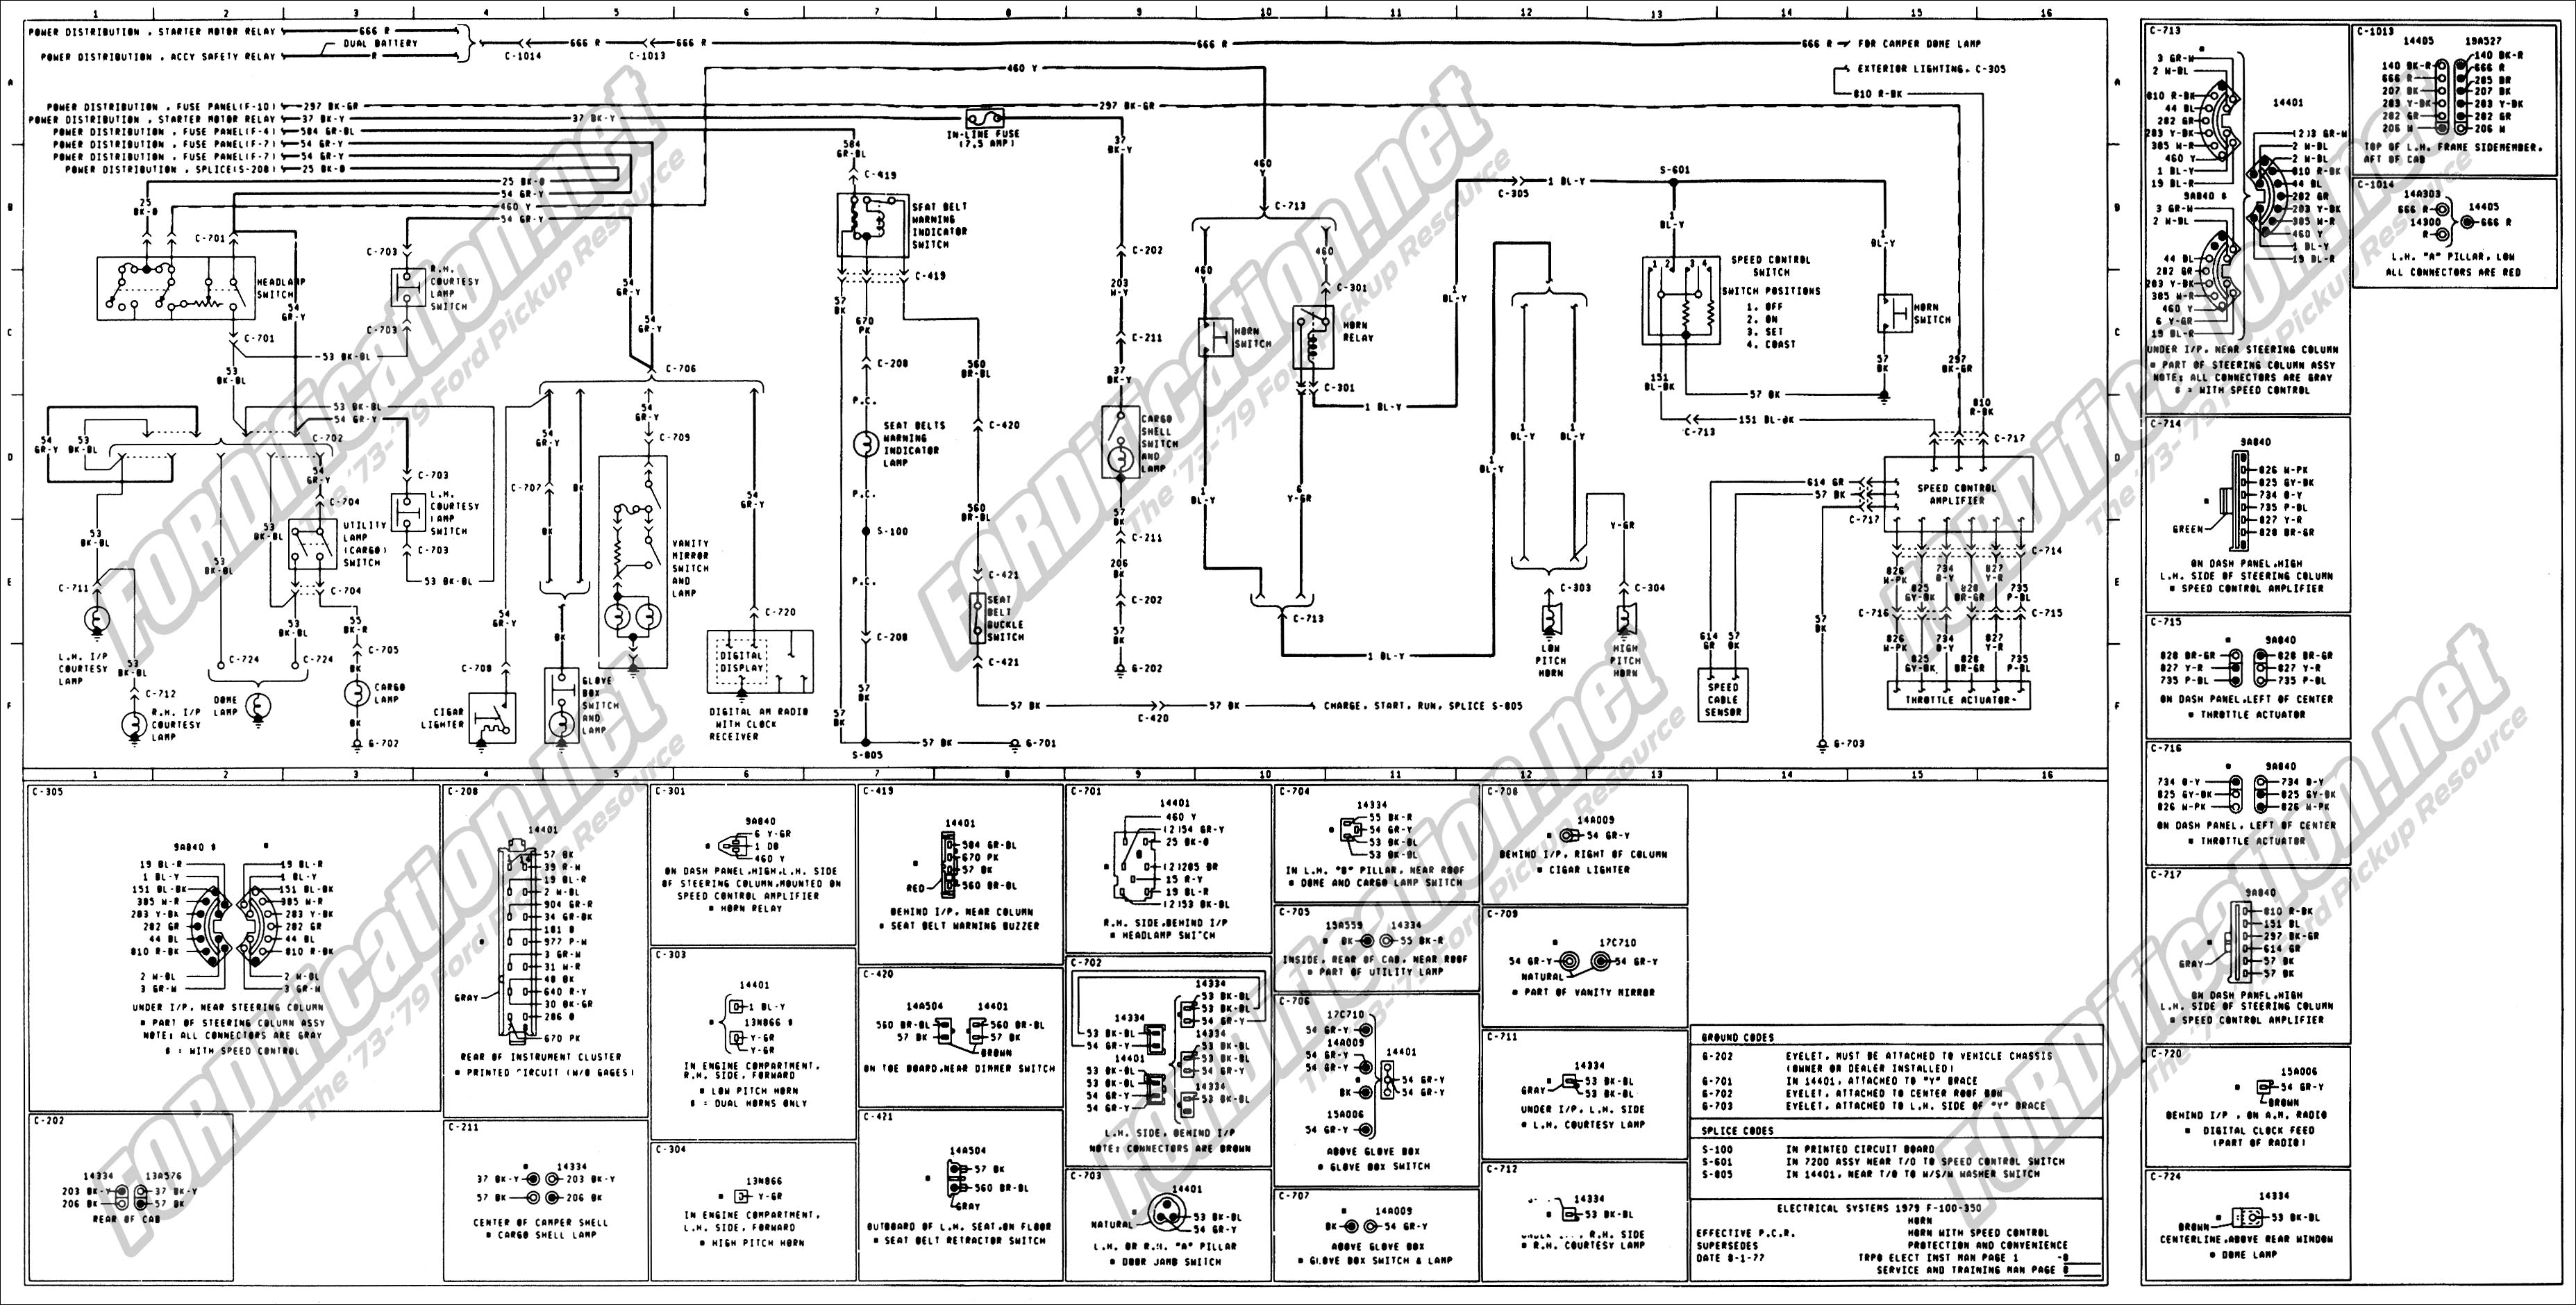 Electrical Diagram 1978 Dodge Power Wagon Start Building A Wiring Ford E250 Auto Rh Psu Edu Co Fr Sanjaydutt Me Old 1980